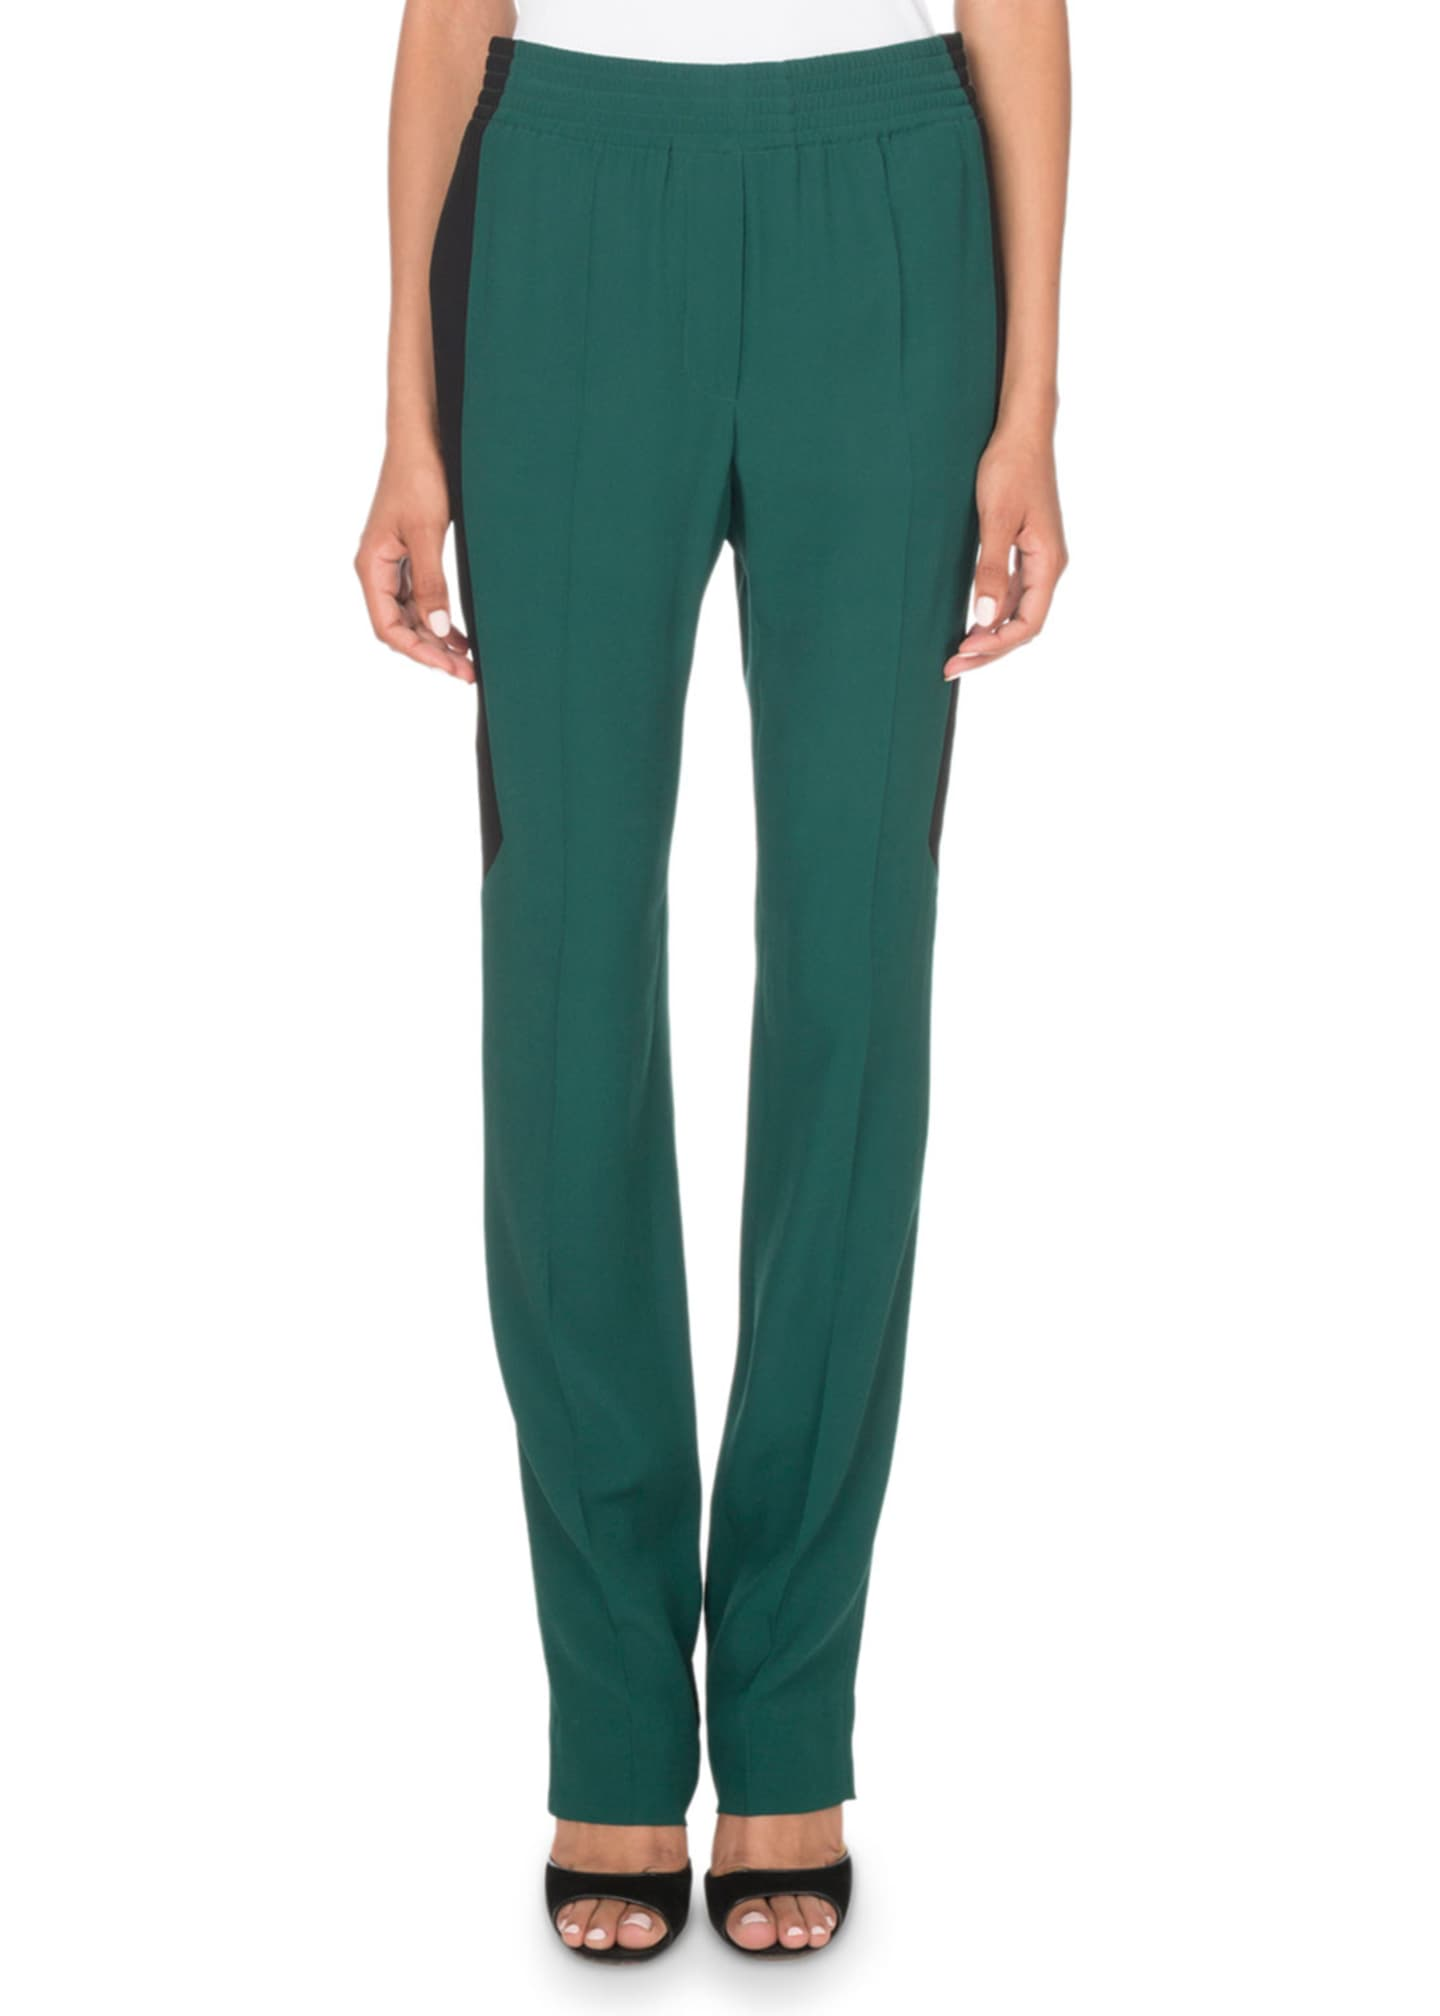 Givenchy Pull-On Colorblocked Crepe & Satin Pants